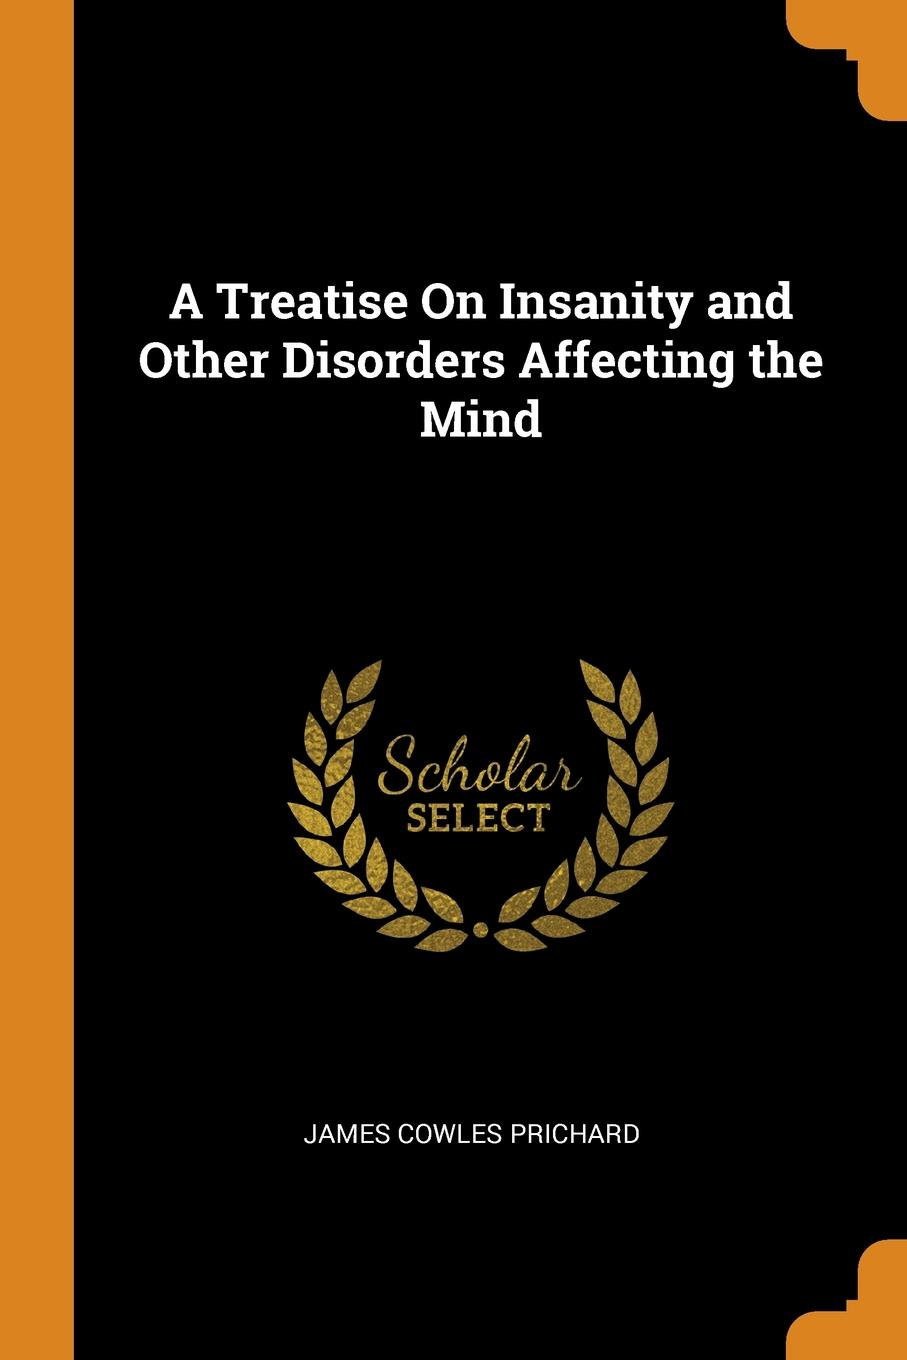 A Treatise On Insanity and Other Disorders Affecting the Mind. James Cowles Prichard